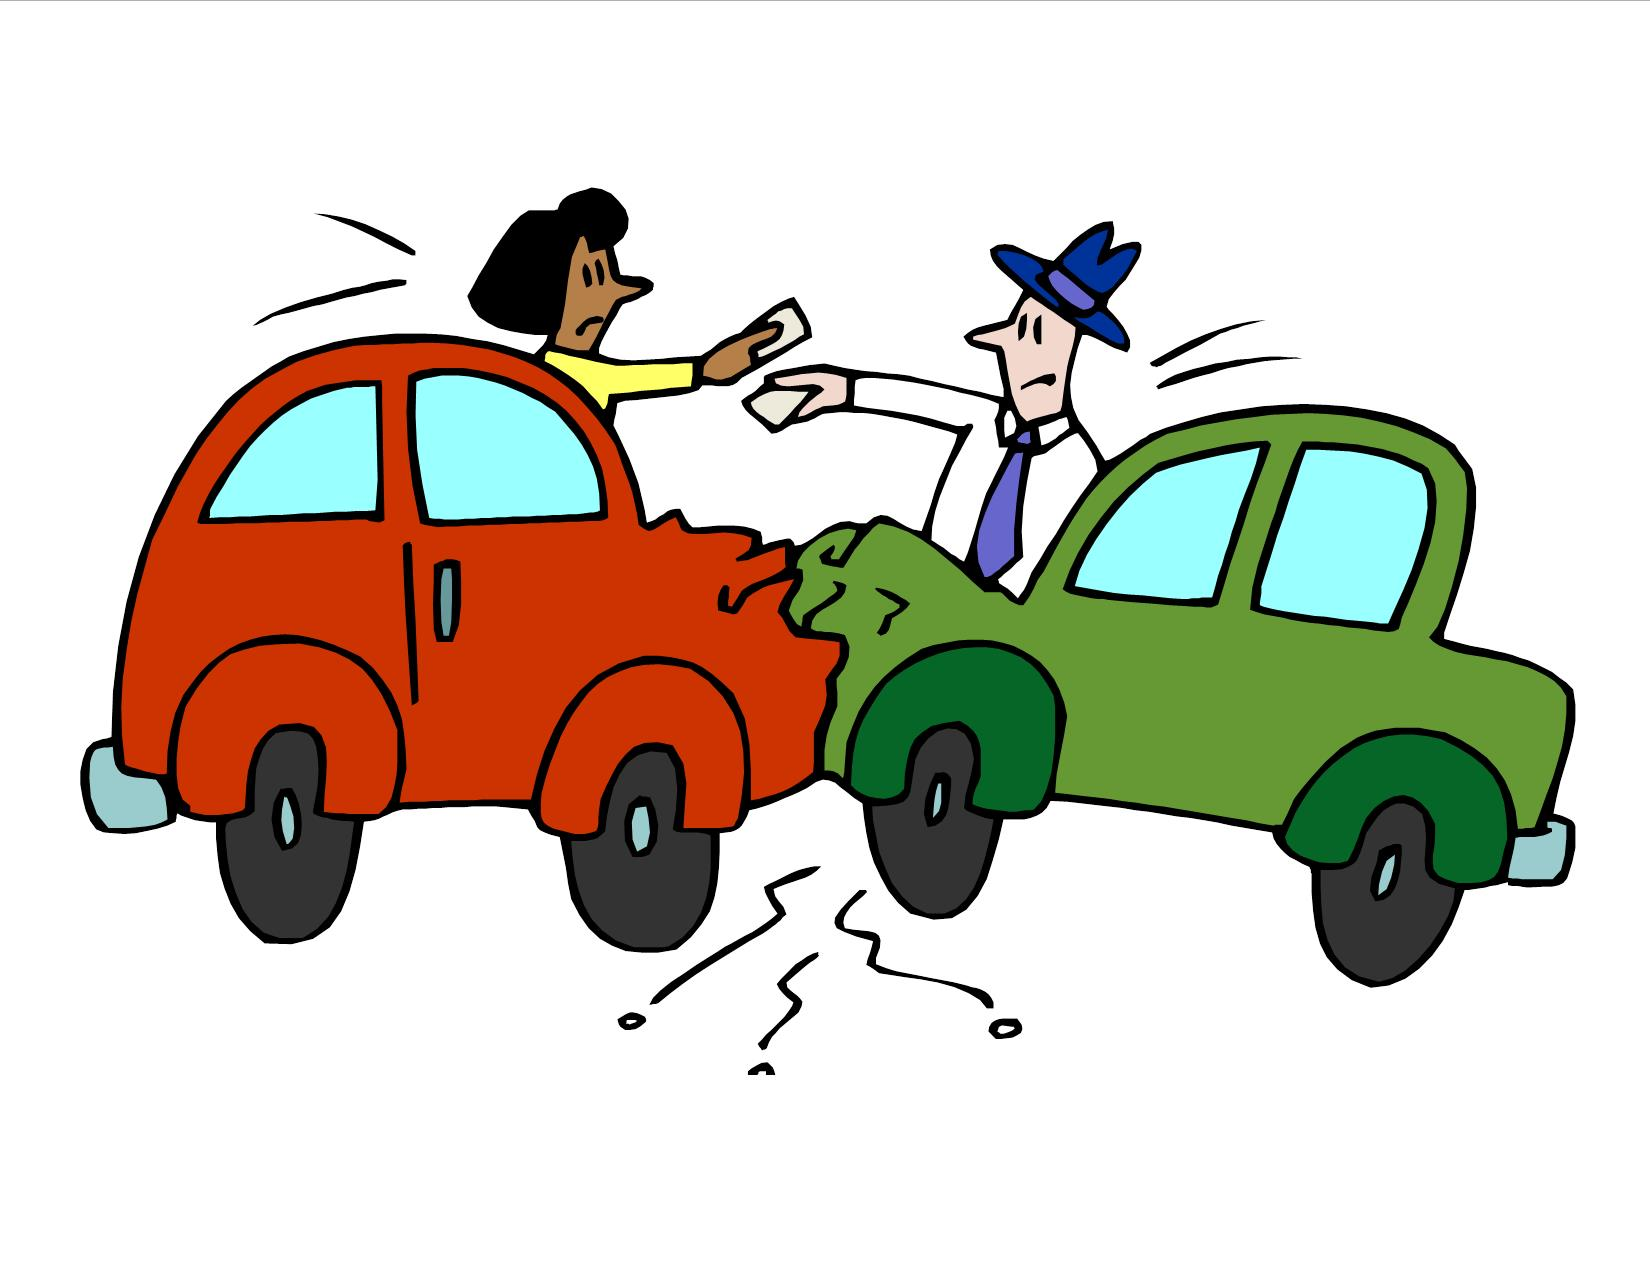 Accident cliparts. Accident cliparts. clipart car accident clipart